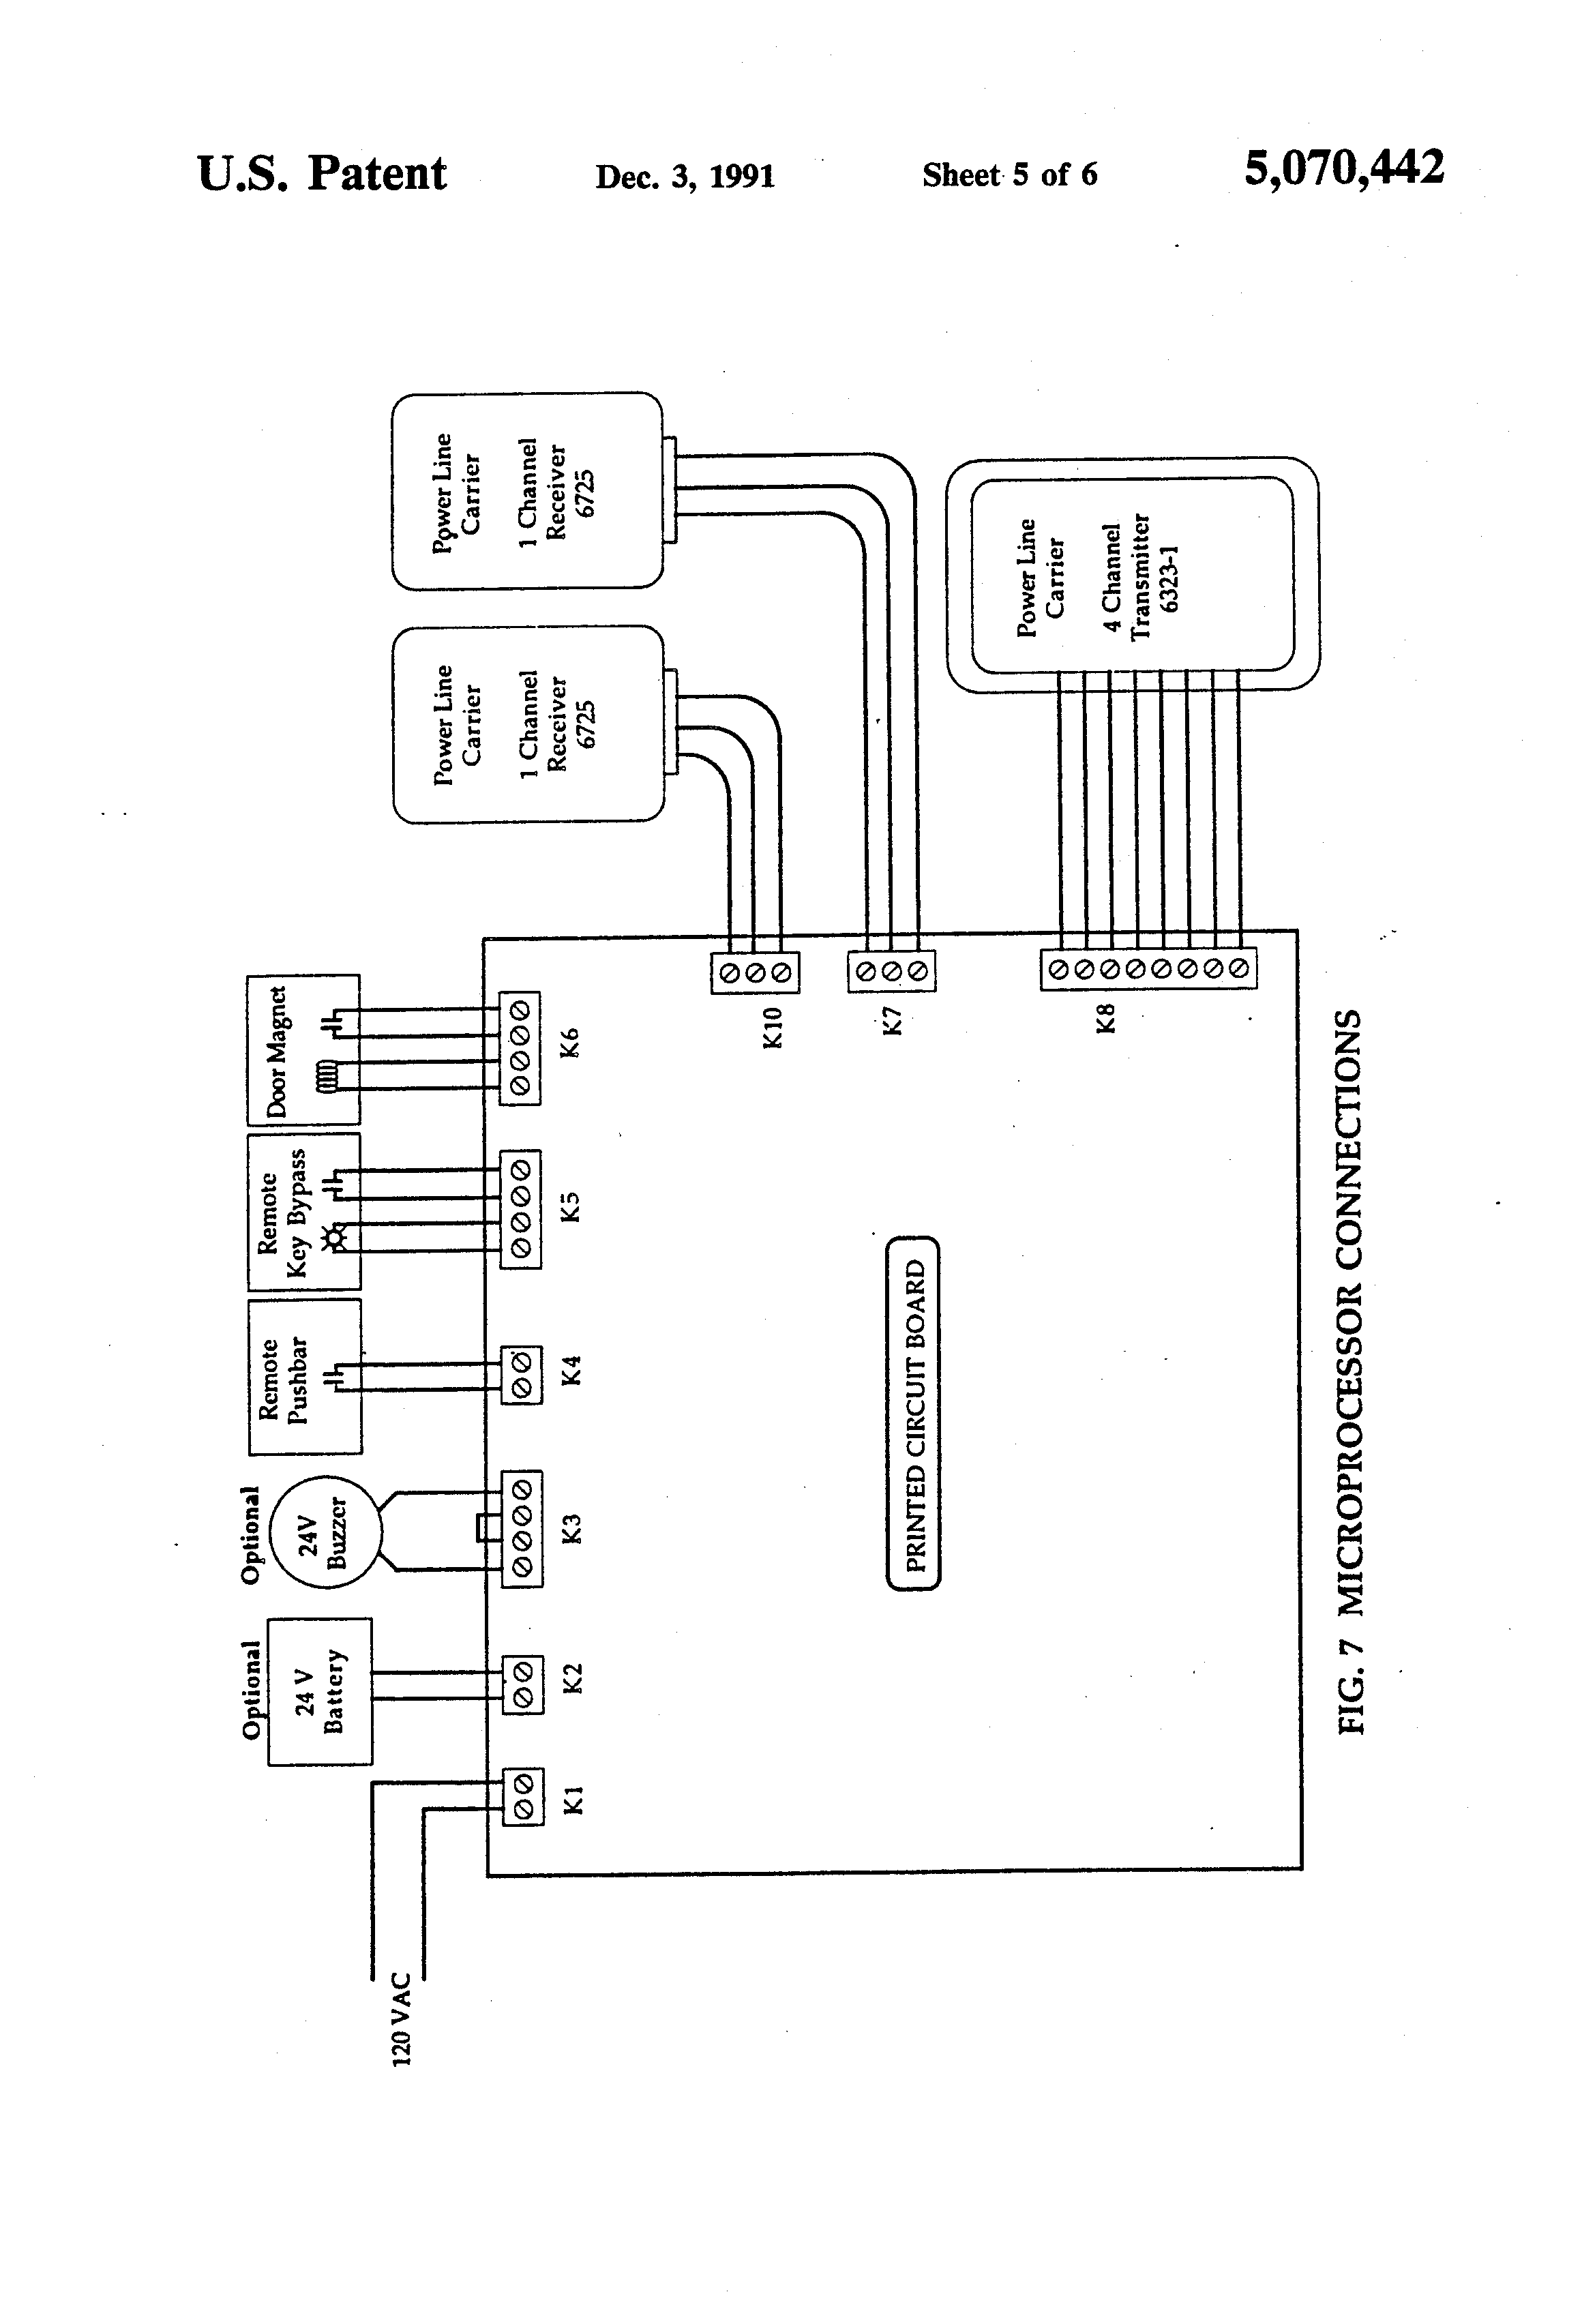 US5070442 5 patent us5070442 computerized door locking and monitoring system Schematic Circuit Diagram at gsmx.co